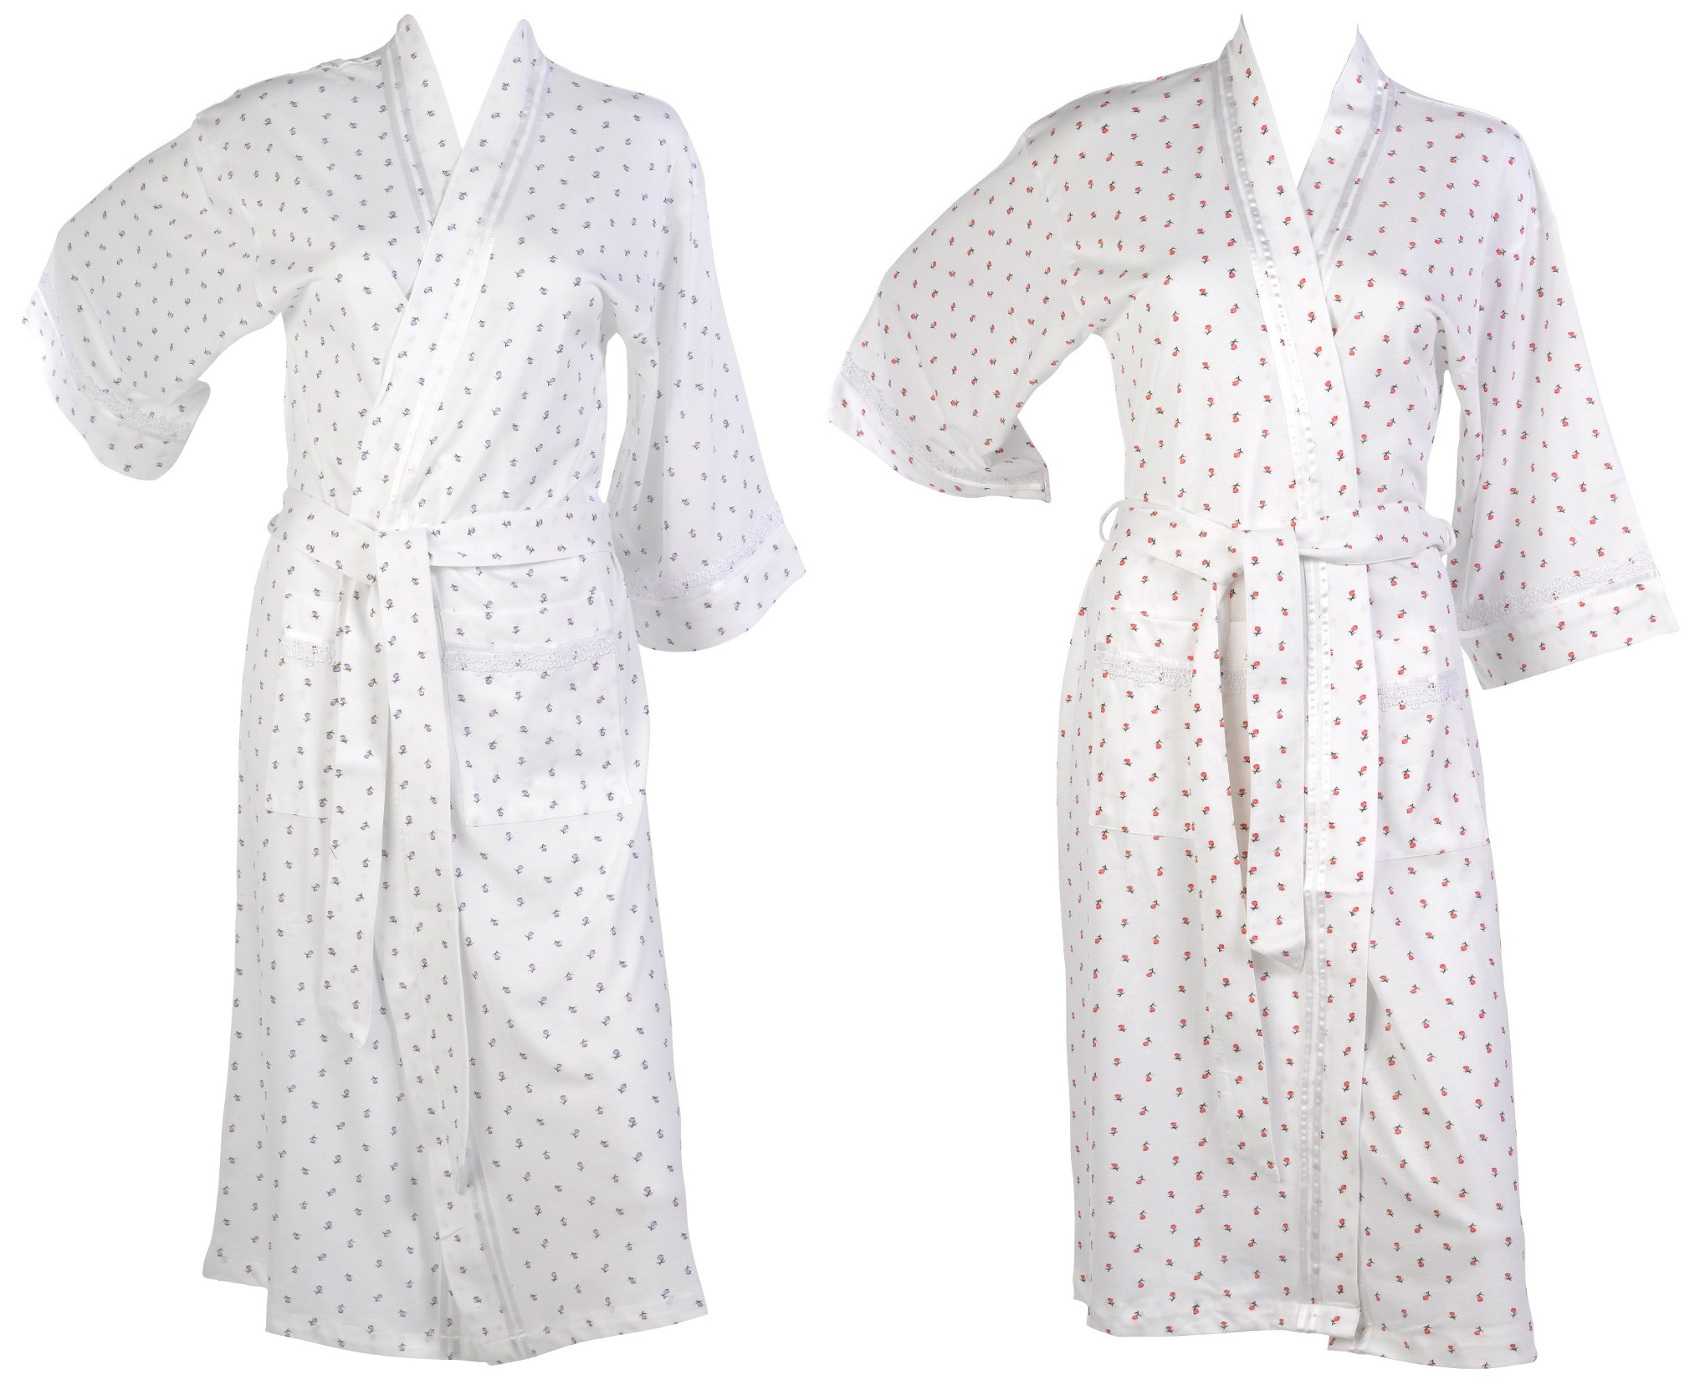 990d4d38a7 These ladies lightweight dressing gowns have a floral rose pattern  throughout with a lace trim